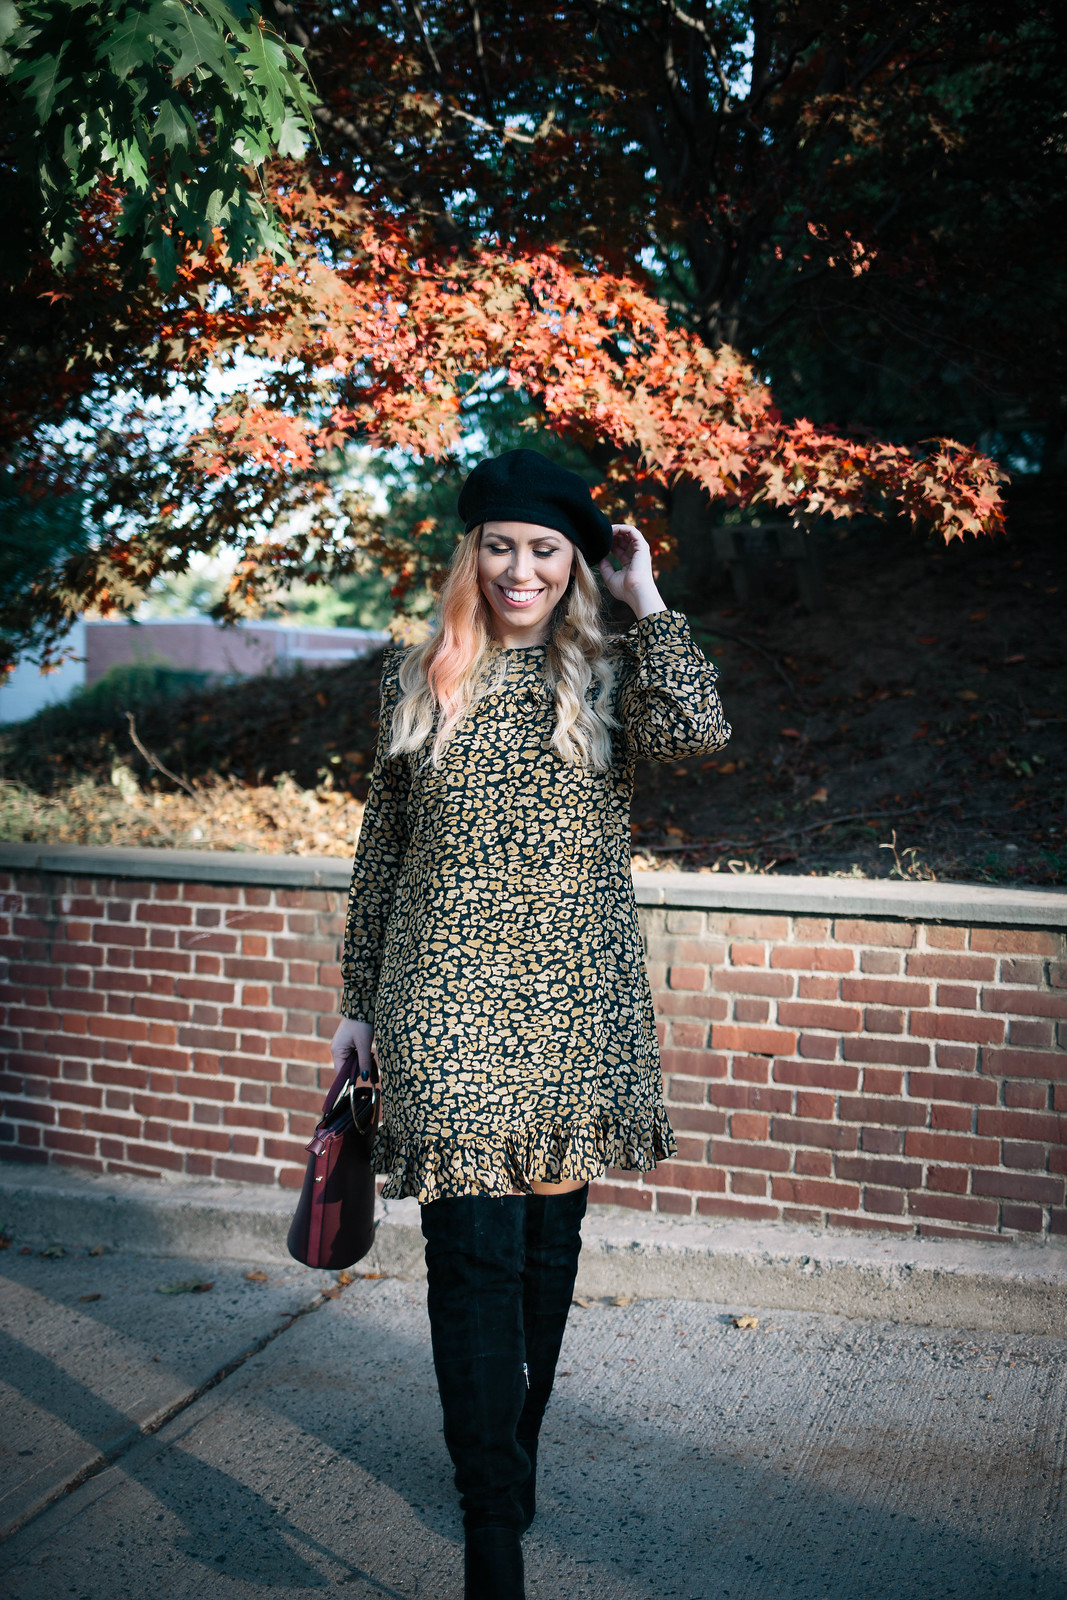 Fall Leaves Yellow Leopard Dress Black Beret Black OTK Suede Boots